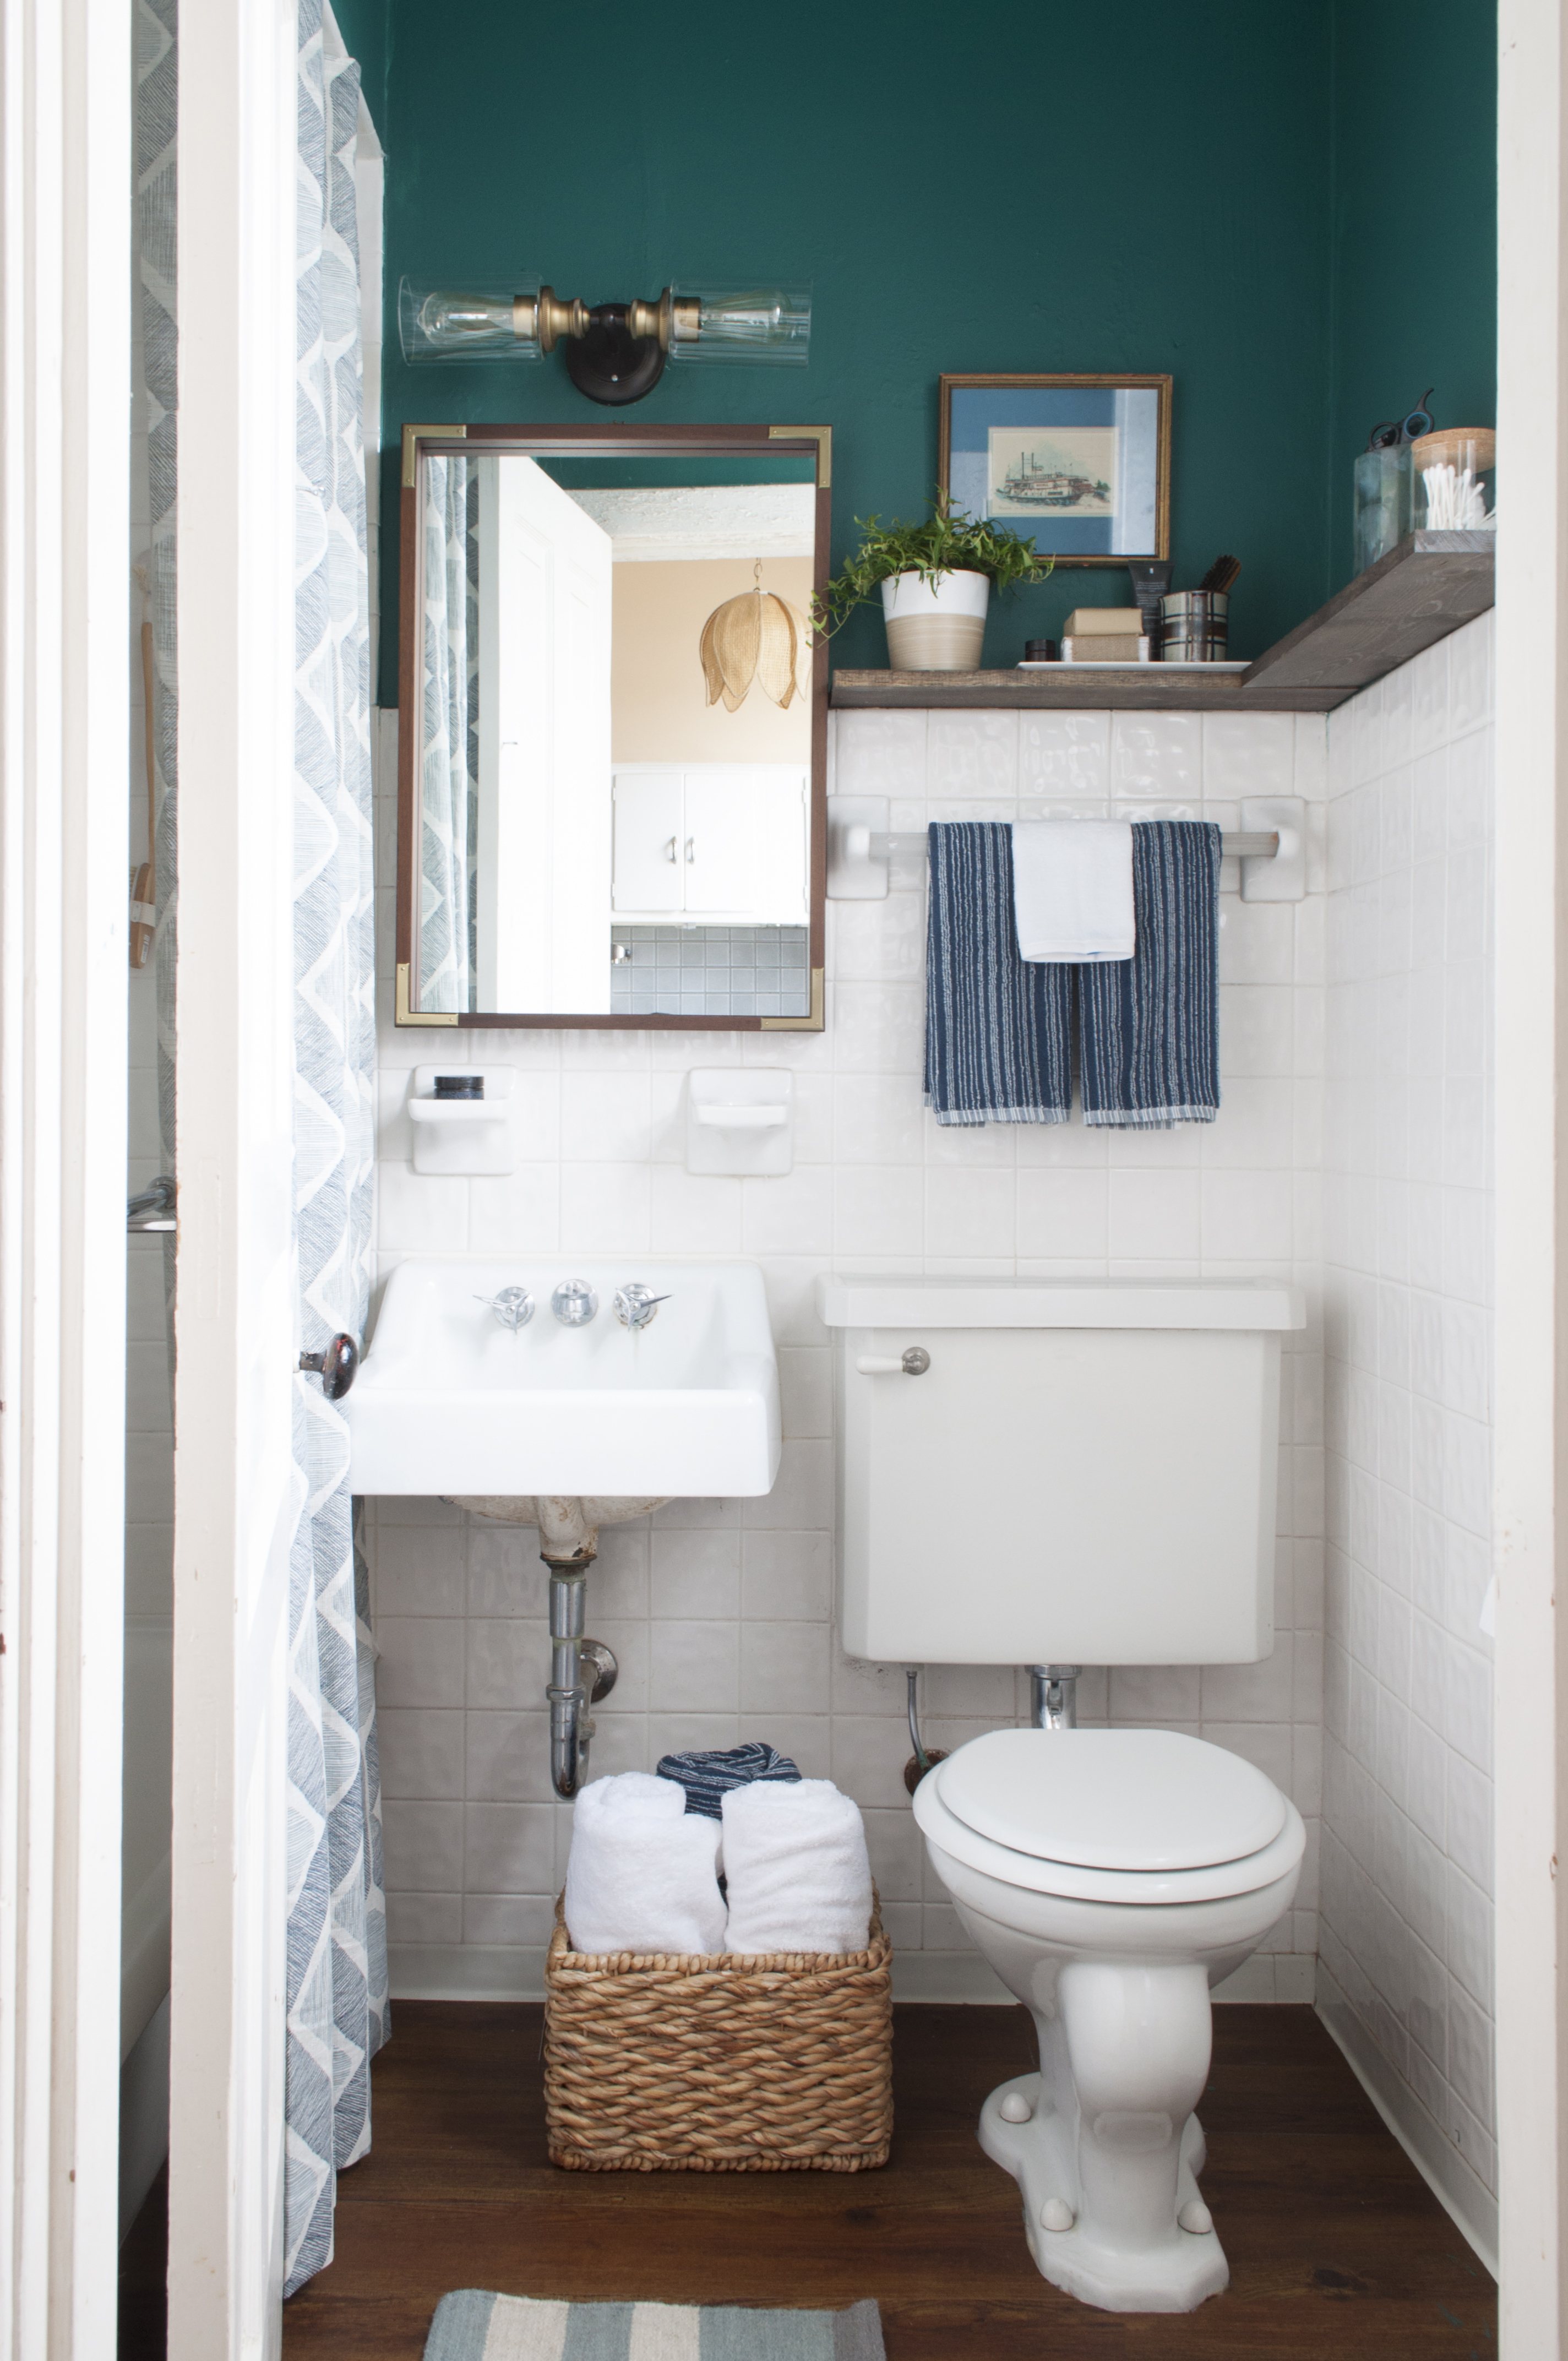 25 Stylish Solutions for Ugly Rental Bathrooms  Apartment Therapy